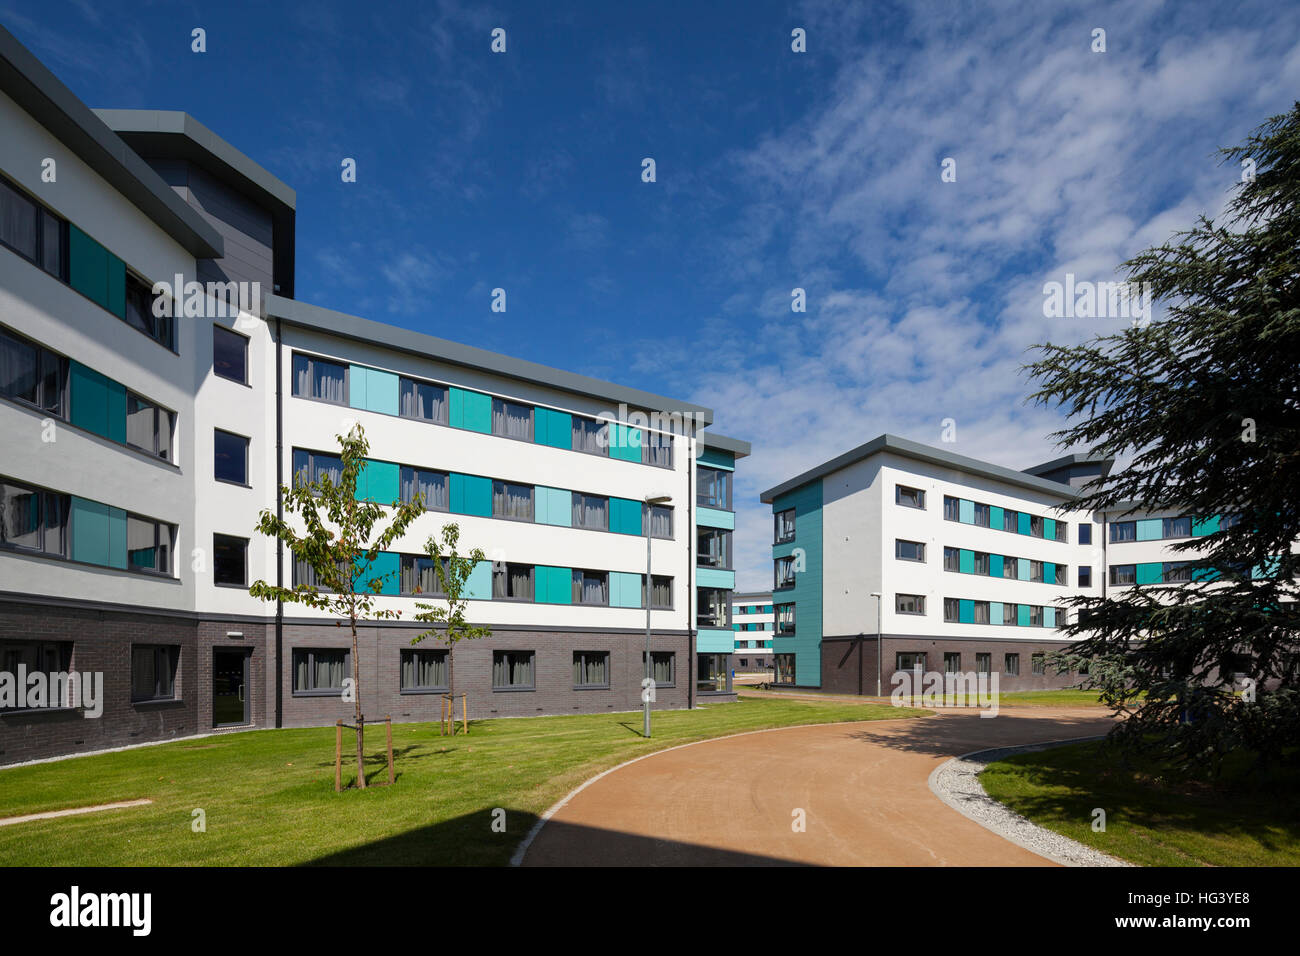 Bridges Hall, University of Reading, Berkshire, UK. On Campus student accommodation with 649 student bedrooms. - Stock Image